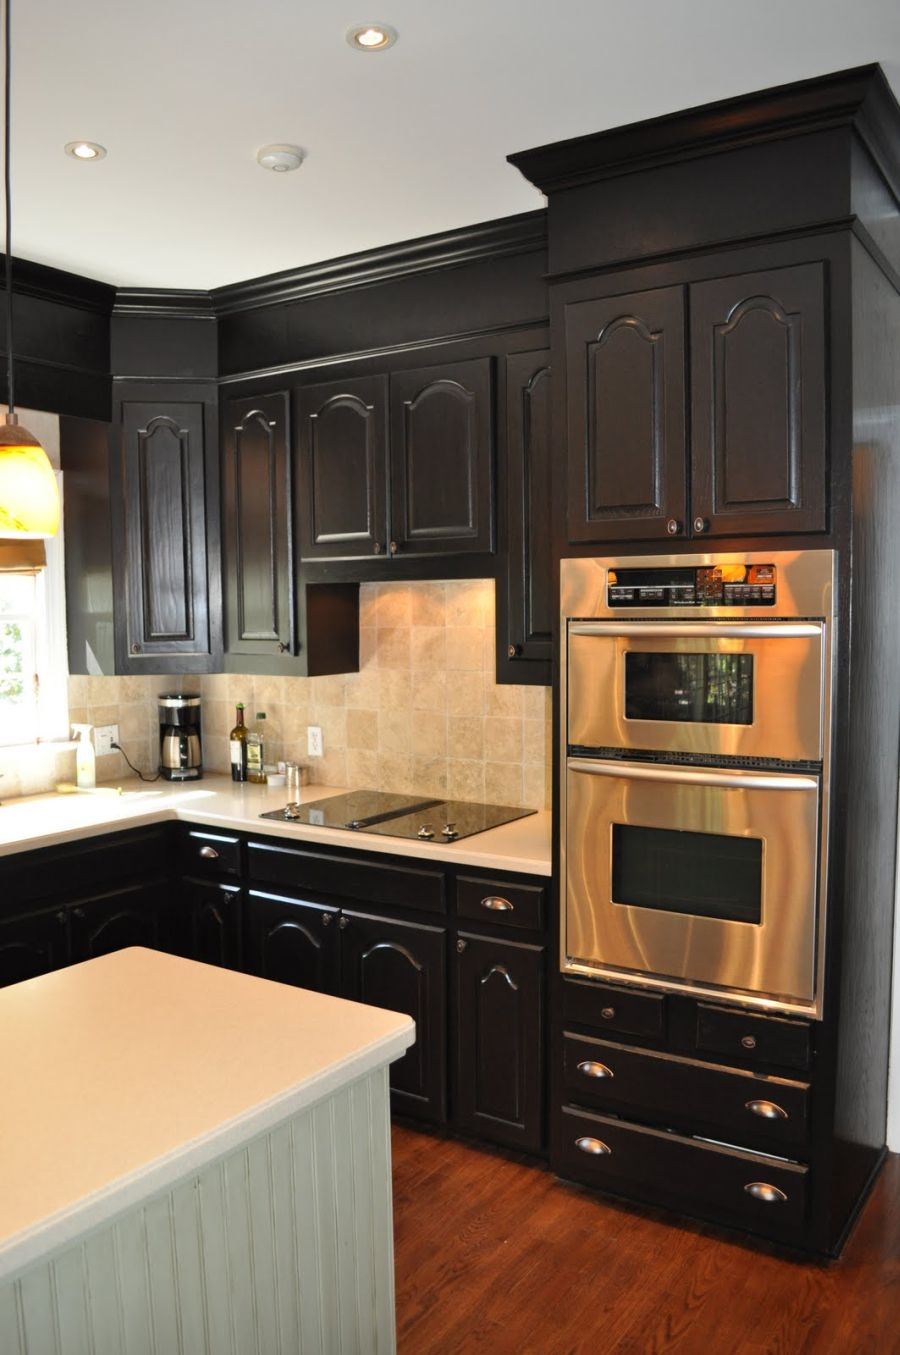 Bon Black Cabinets With Soffits.